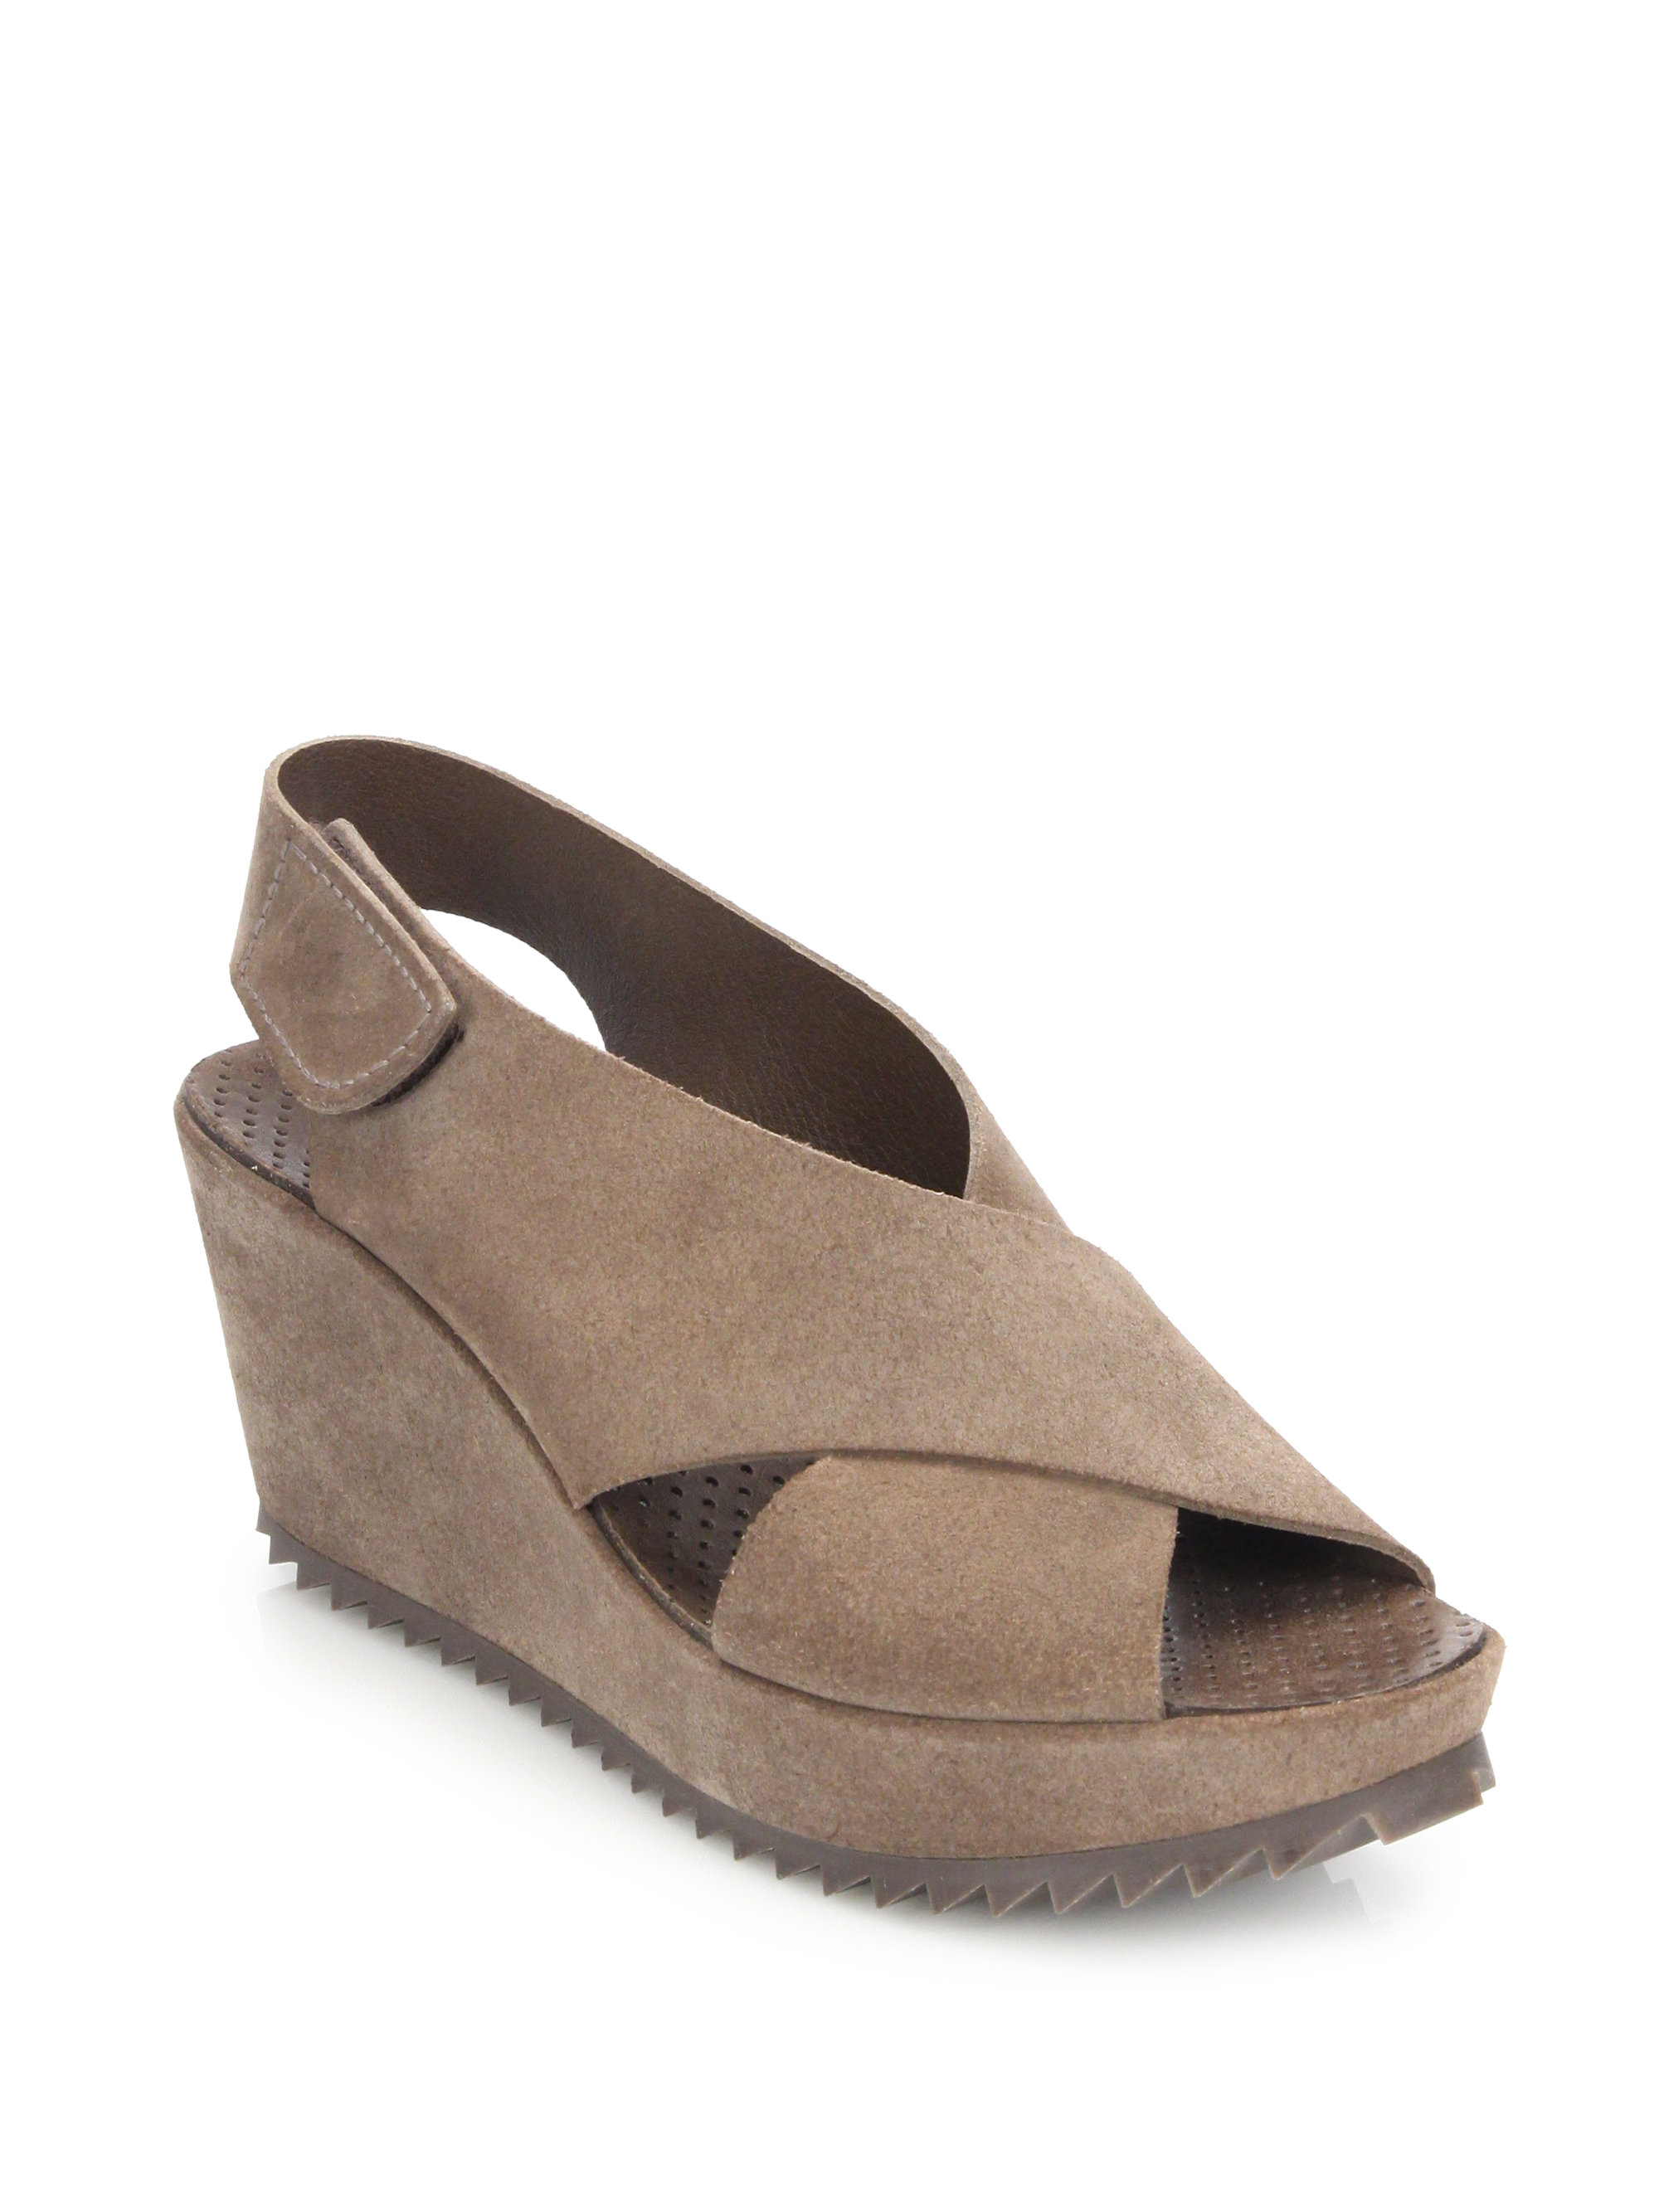 pedro garcia suede criss cross wedge sandals in brown lyst